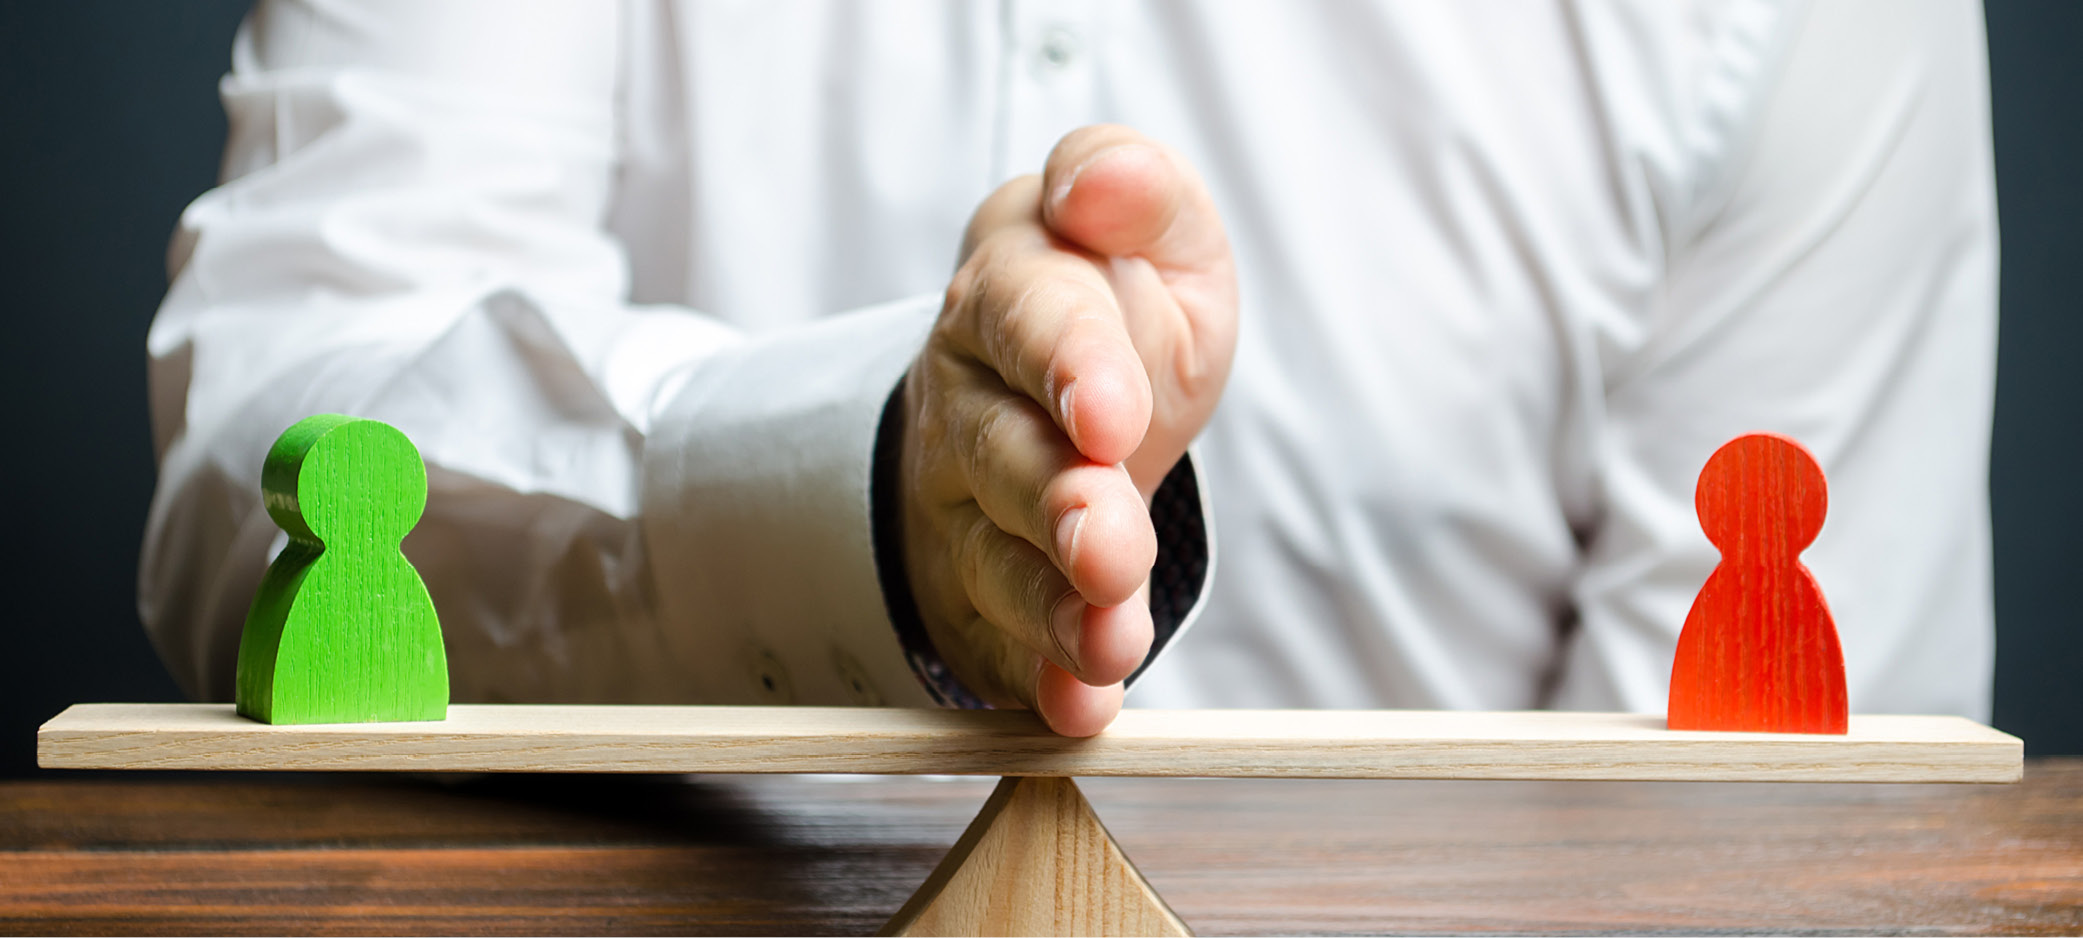 Two wooden figures balance on a scale. A man's hand is put up as a divider between them.